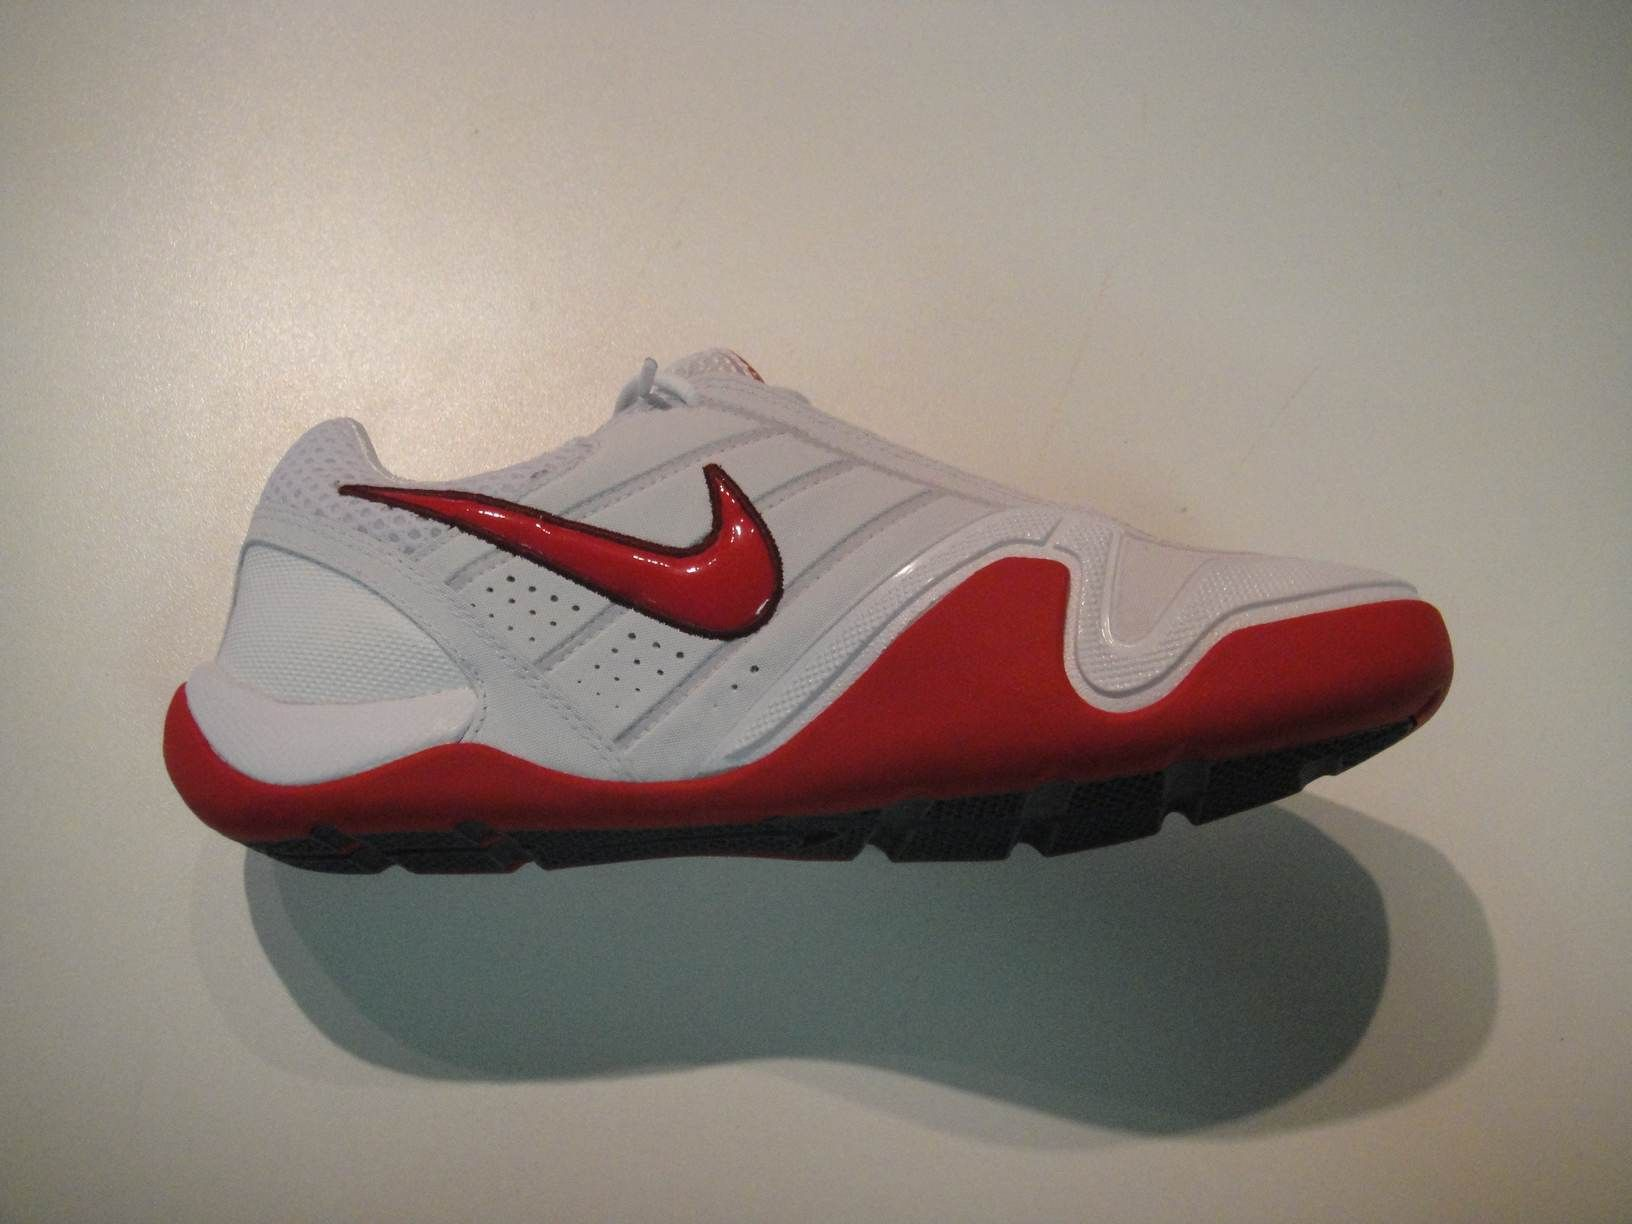 incompleto comerciante Especialmente  Nike Air Zoom FencingShoes Red | Fencing shoes, Nike, Nike air zoom